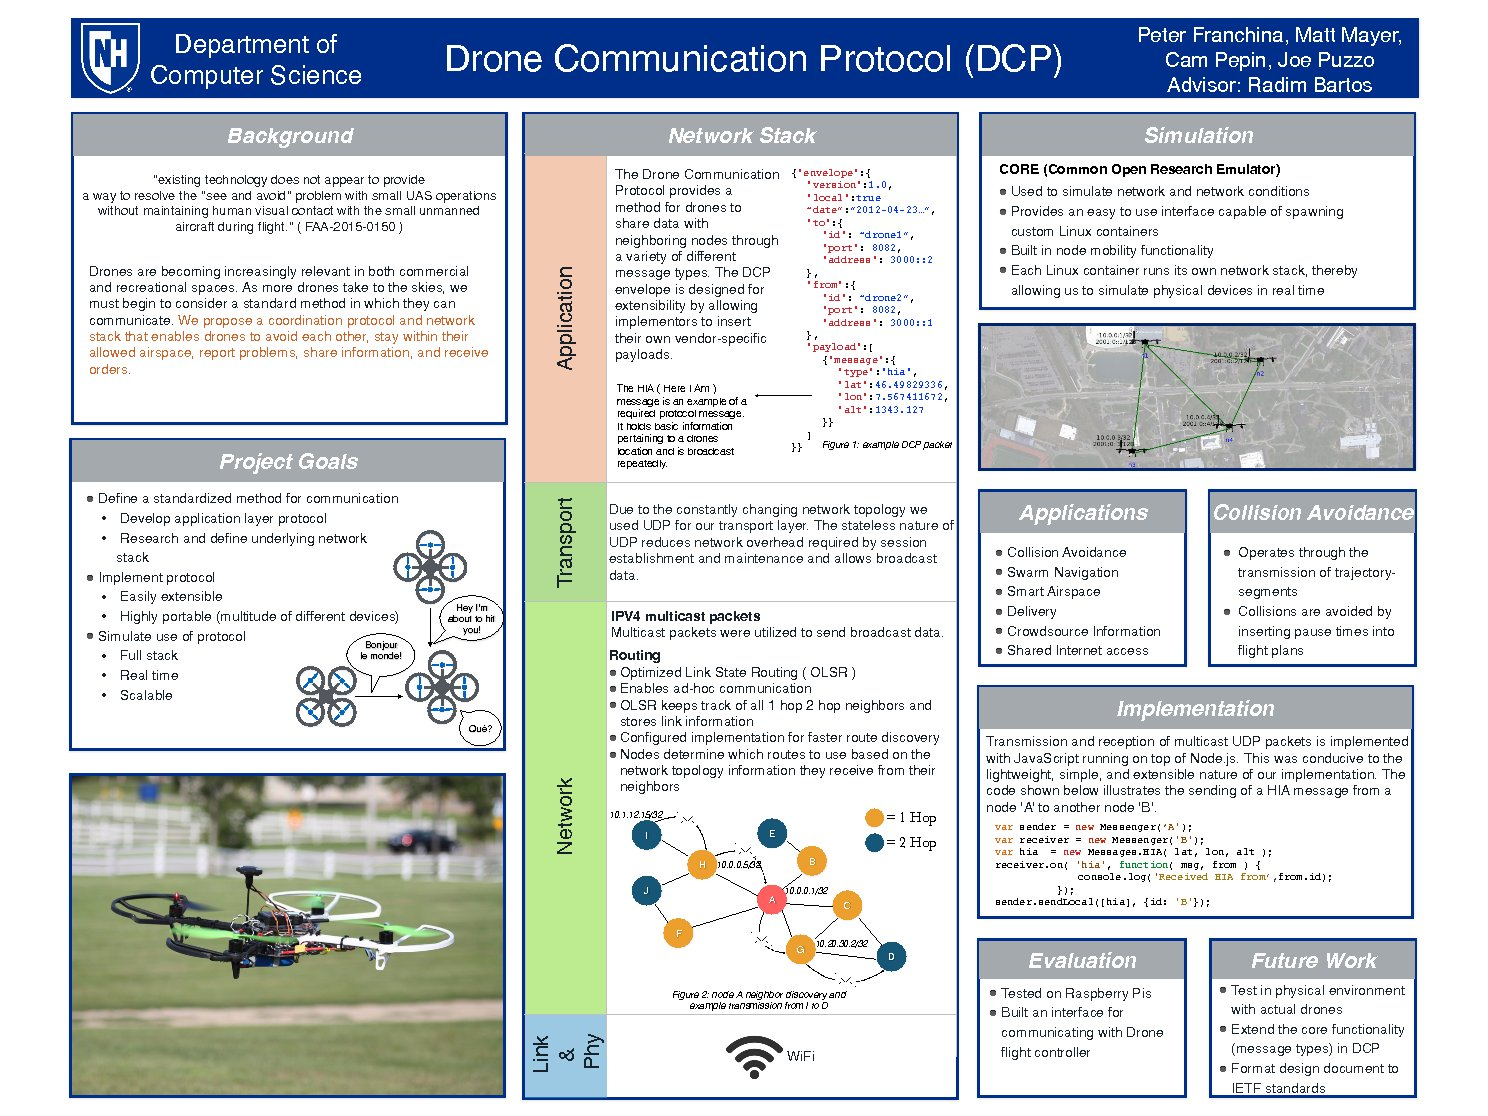 Drone Communication Protocol by pjx59